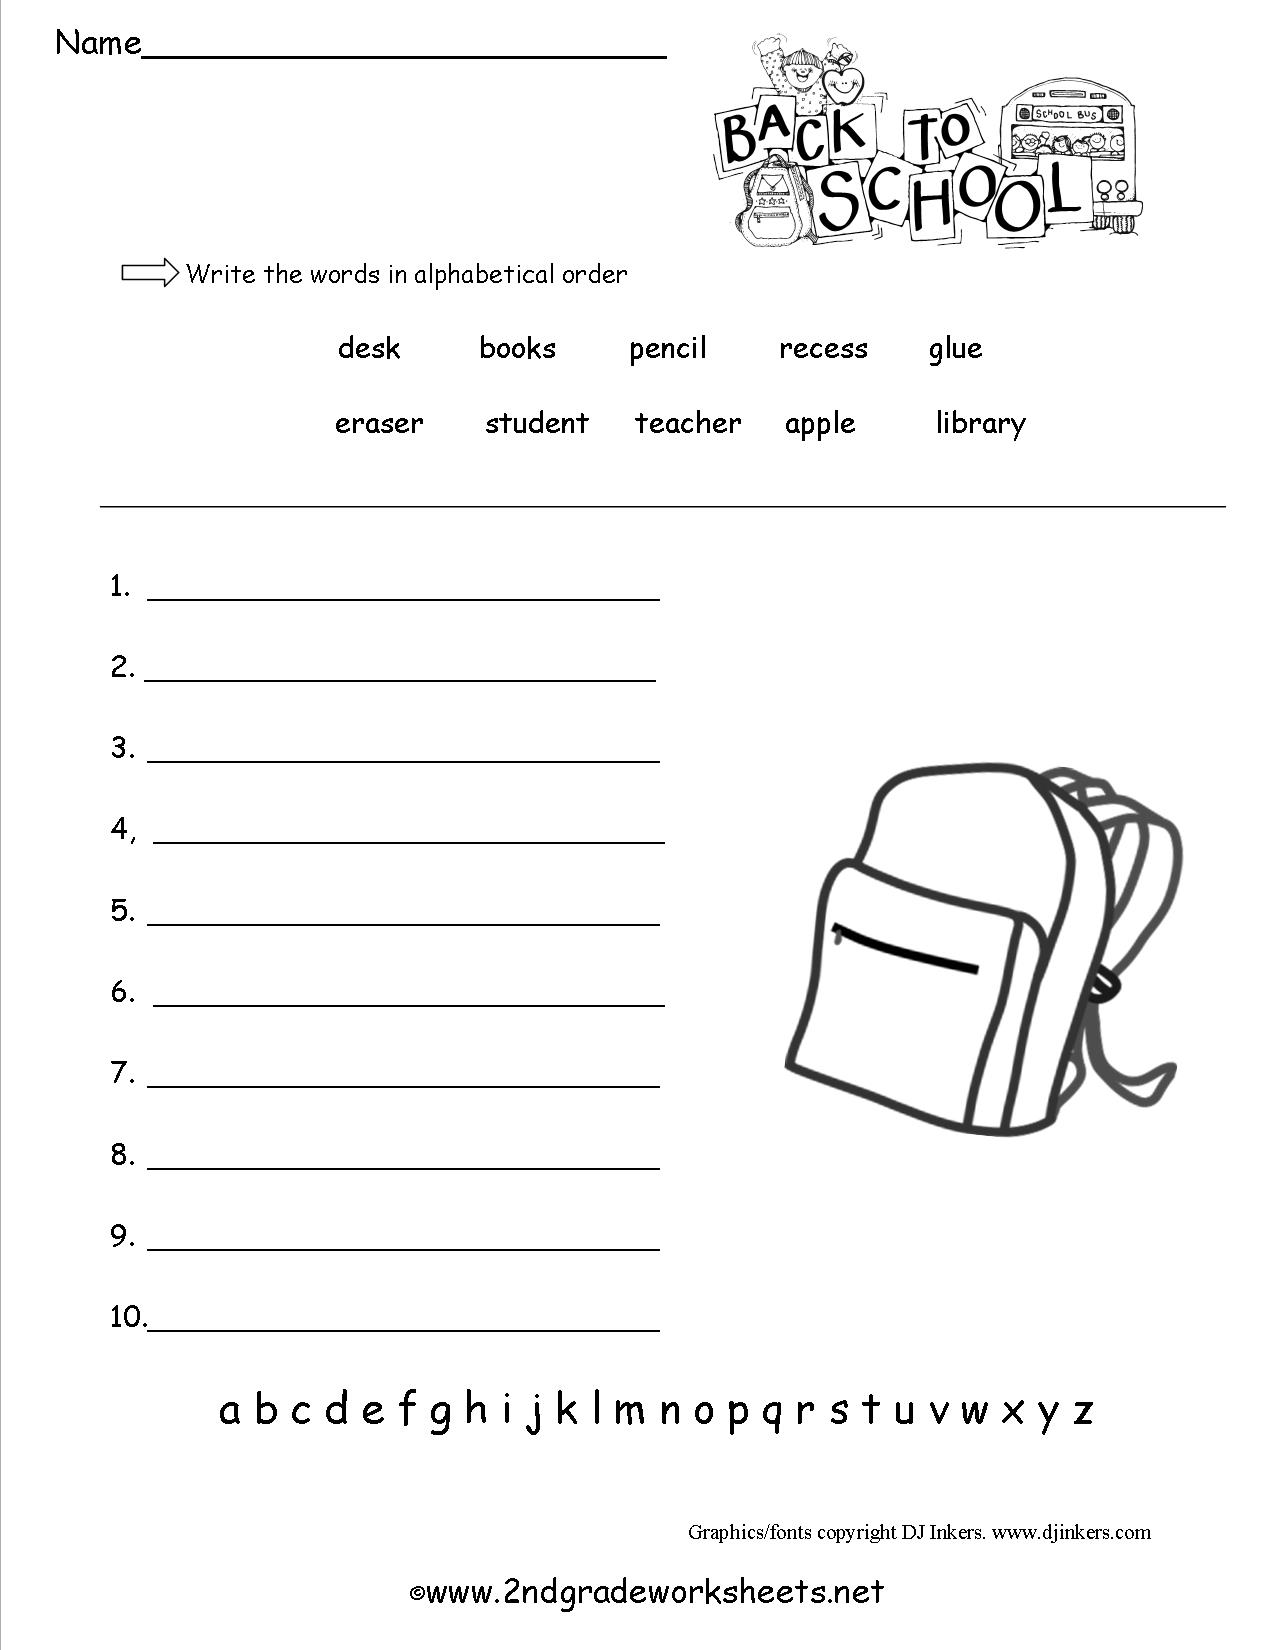 6 Best Images Of Printable School Worksheets For 3rd